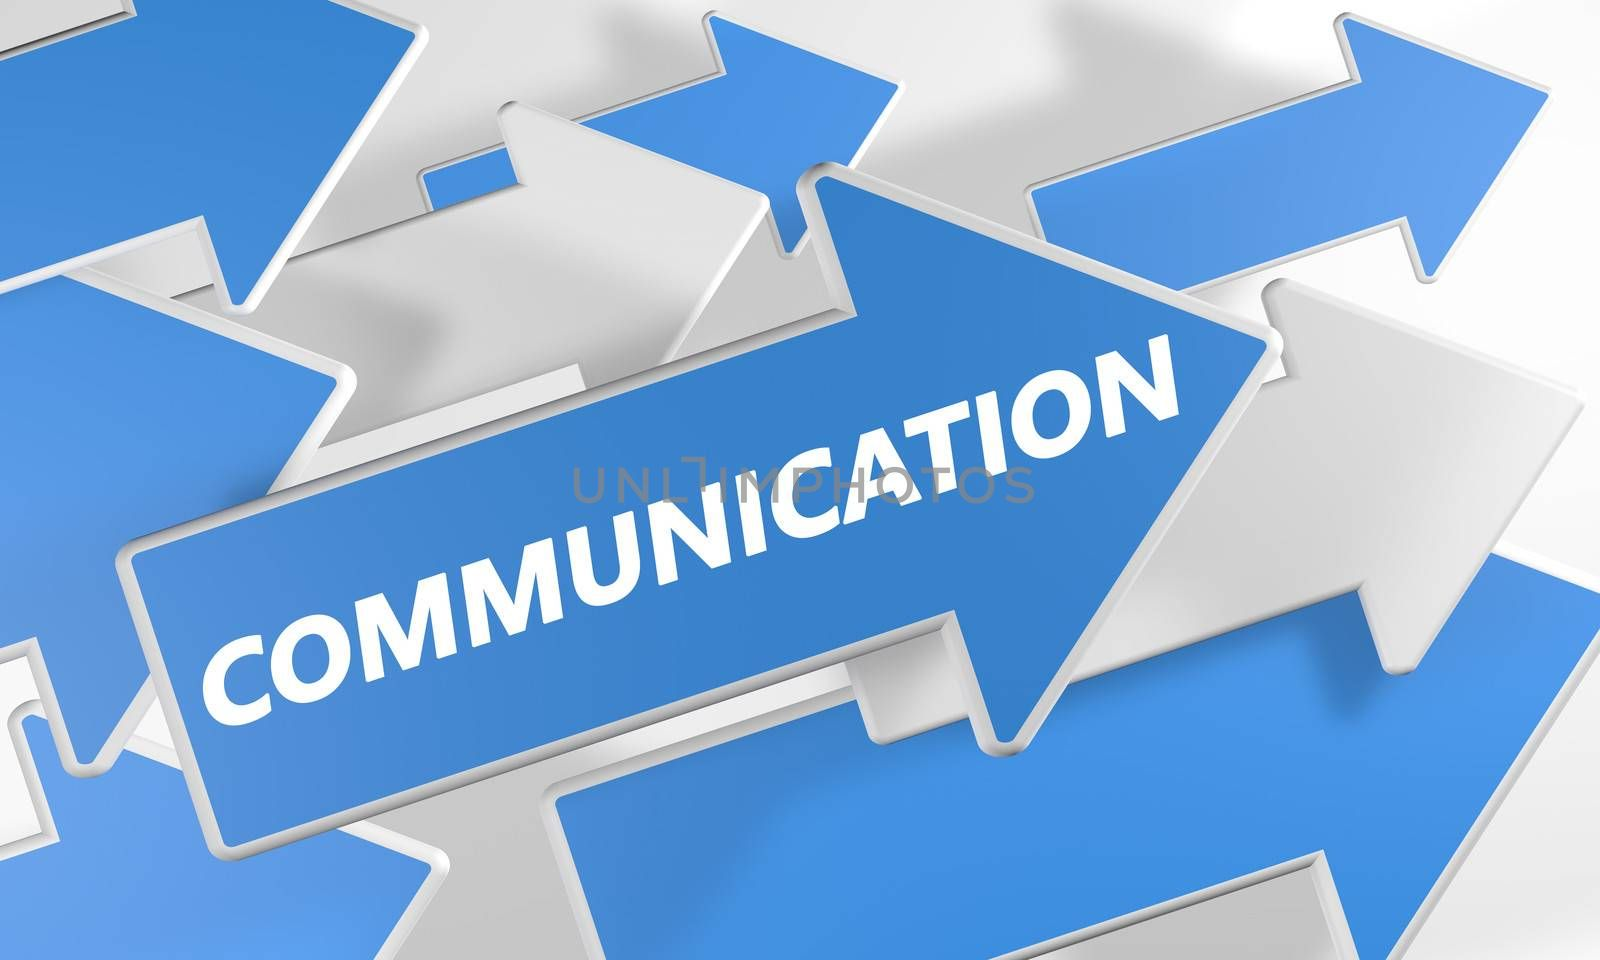 Communication 3d render concept with blue and white arrows flying over a white background.